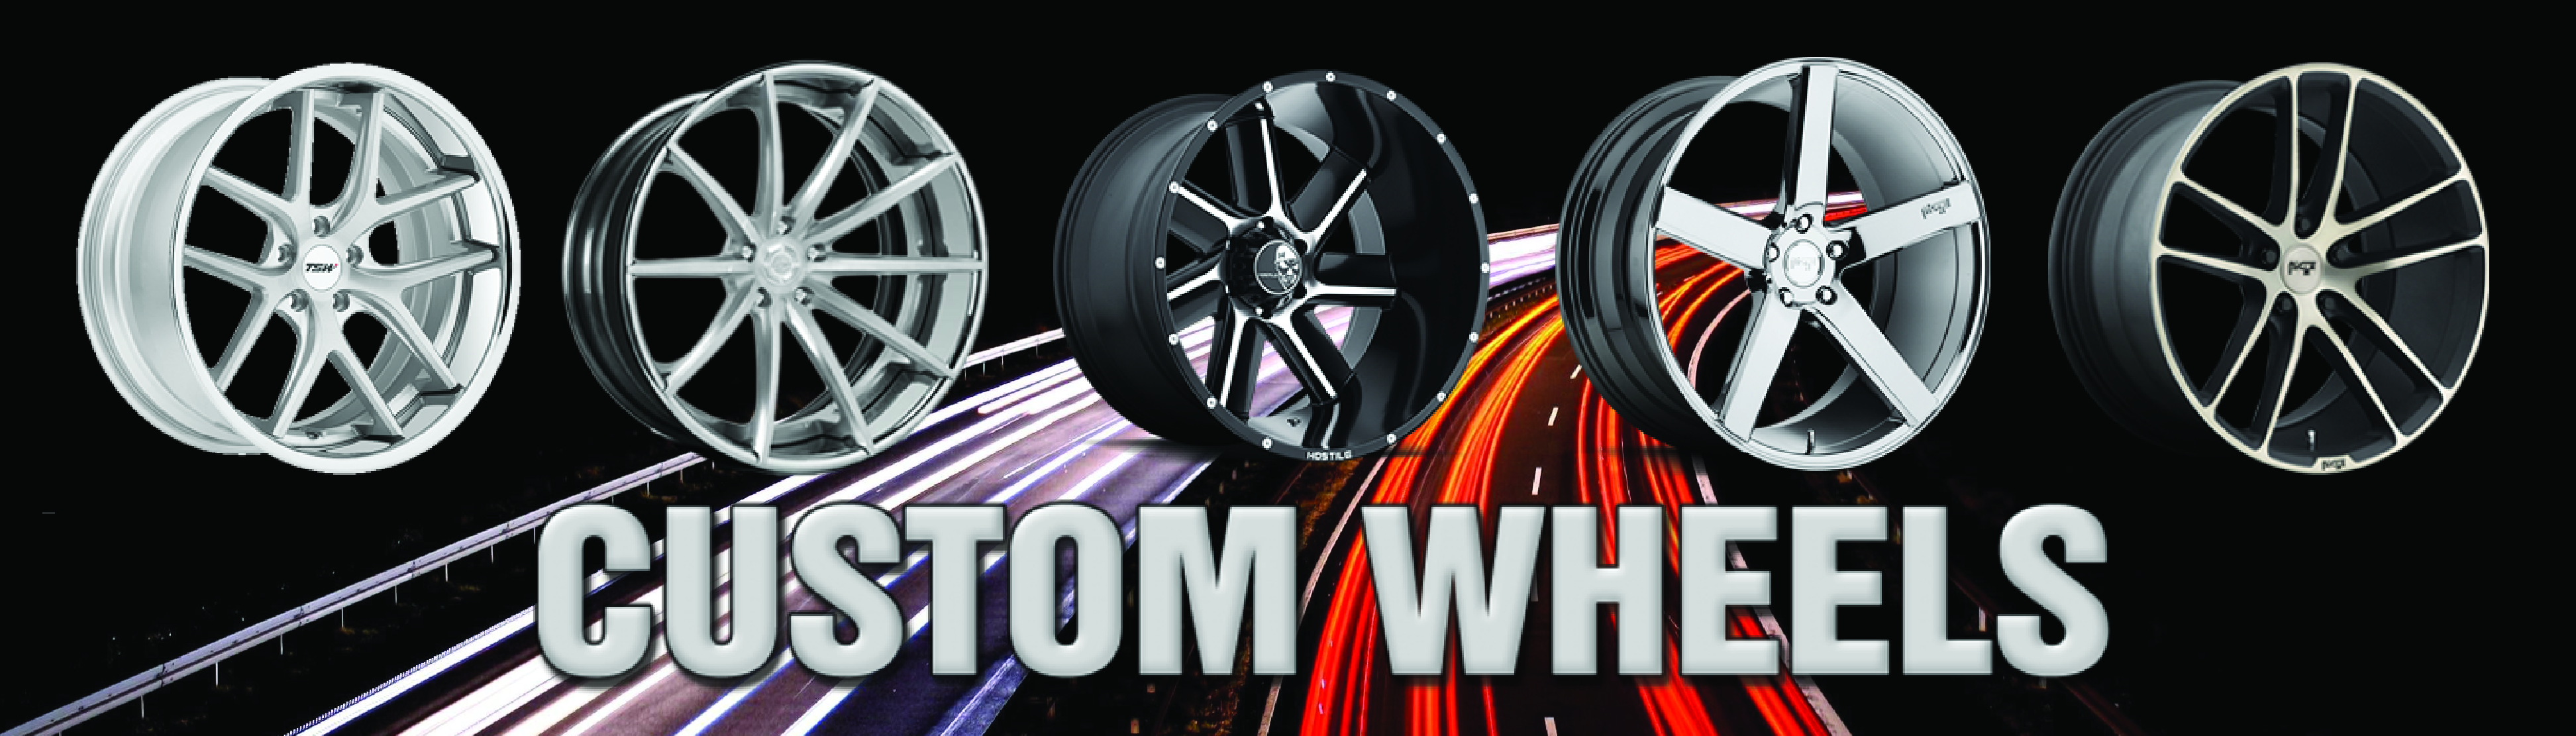 Custom-Wheels-1400x400-01